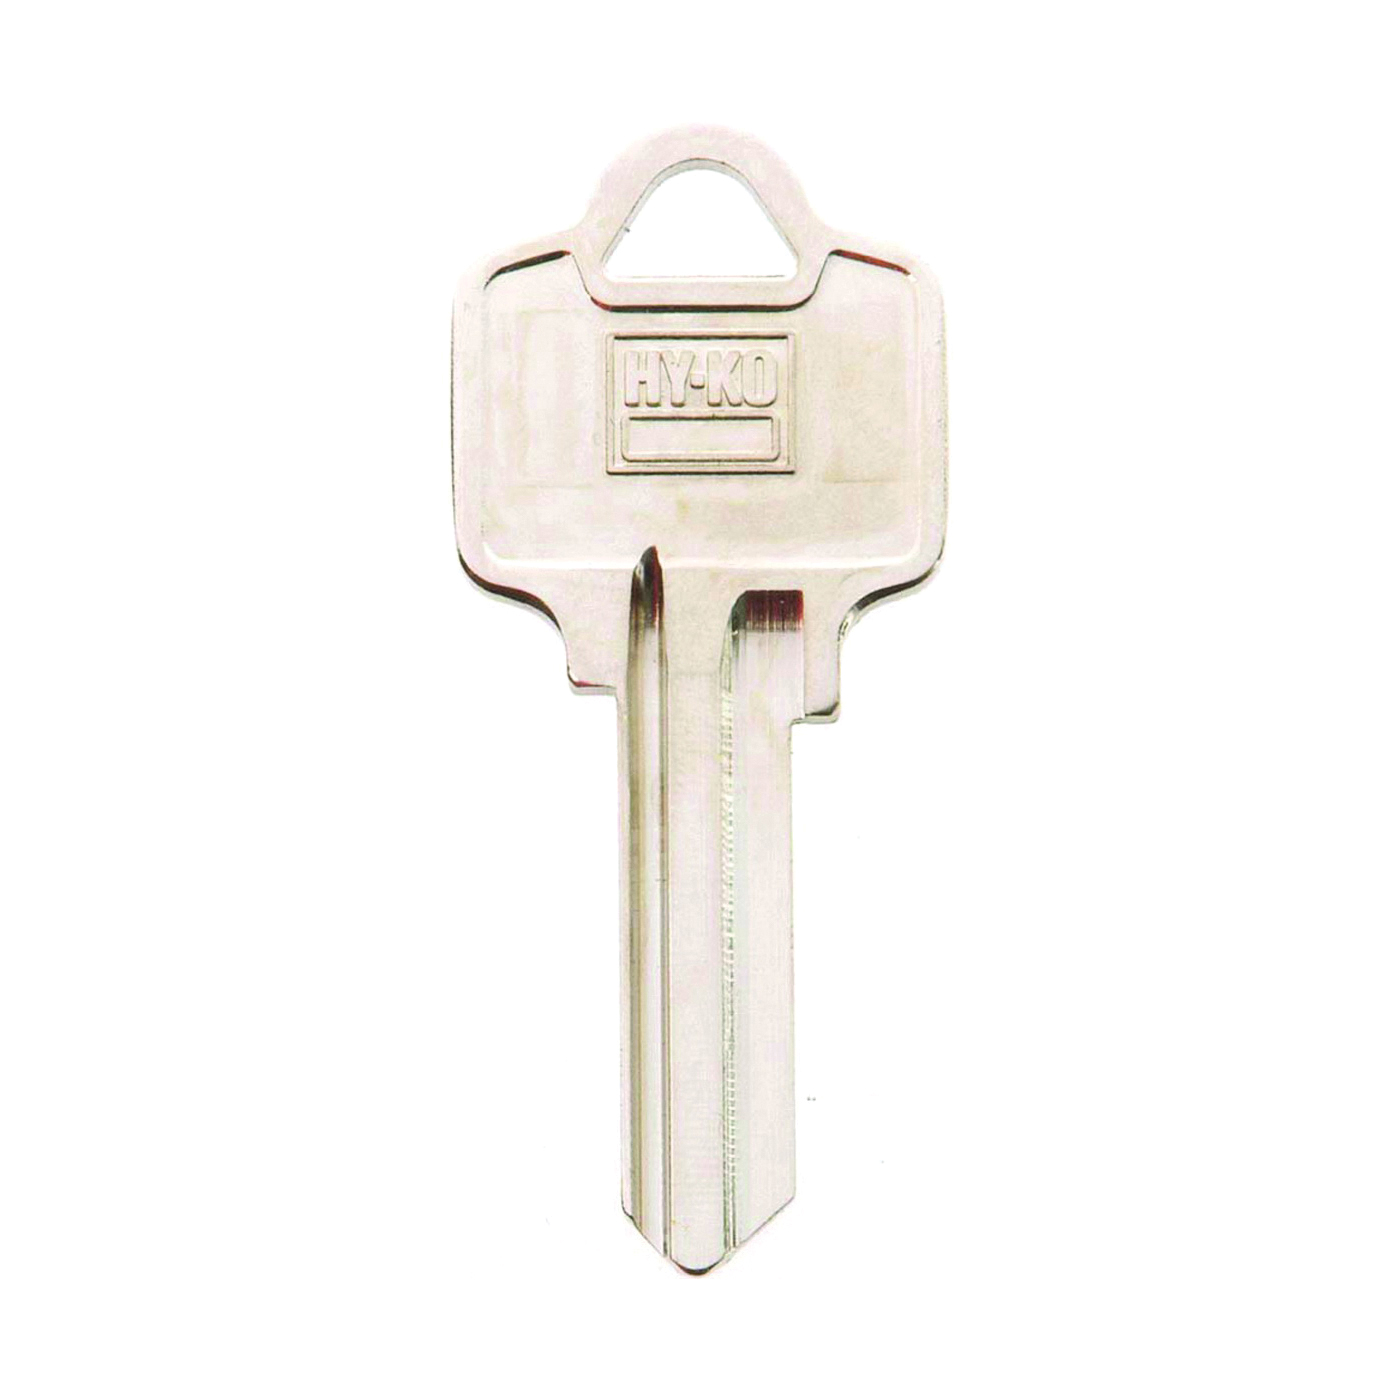 Picture of HY-KO 11010AR1 Key Blank, Brass, Nickel, For: American Cabinet, House Locks and Padlocks